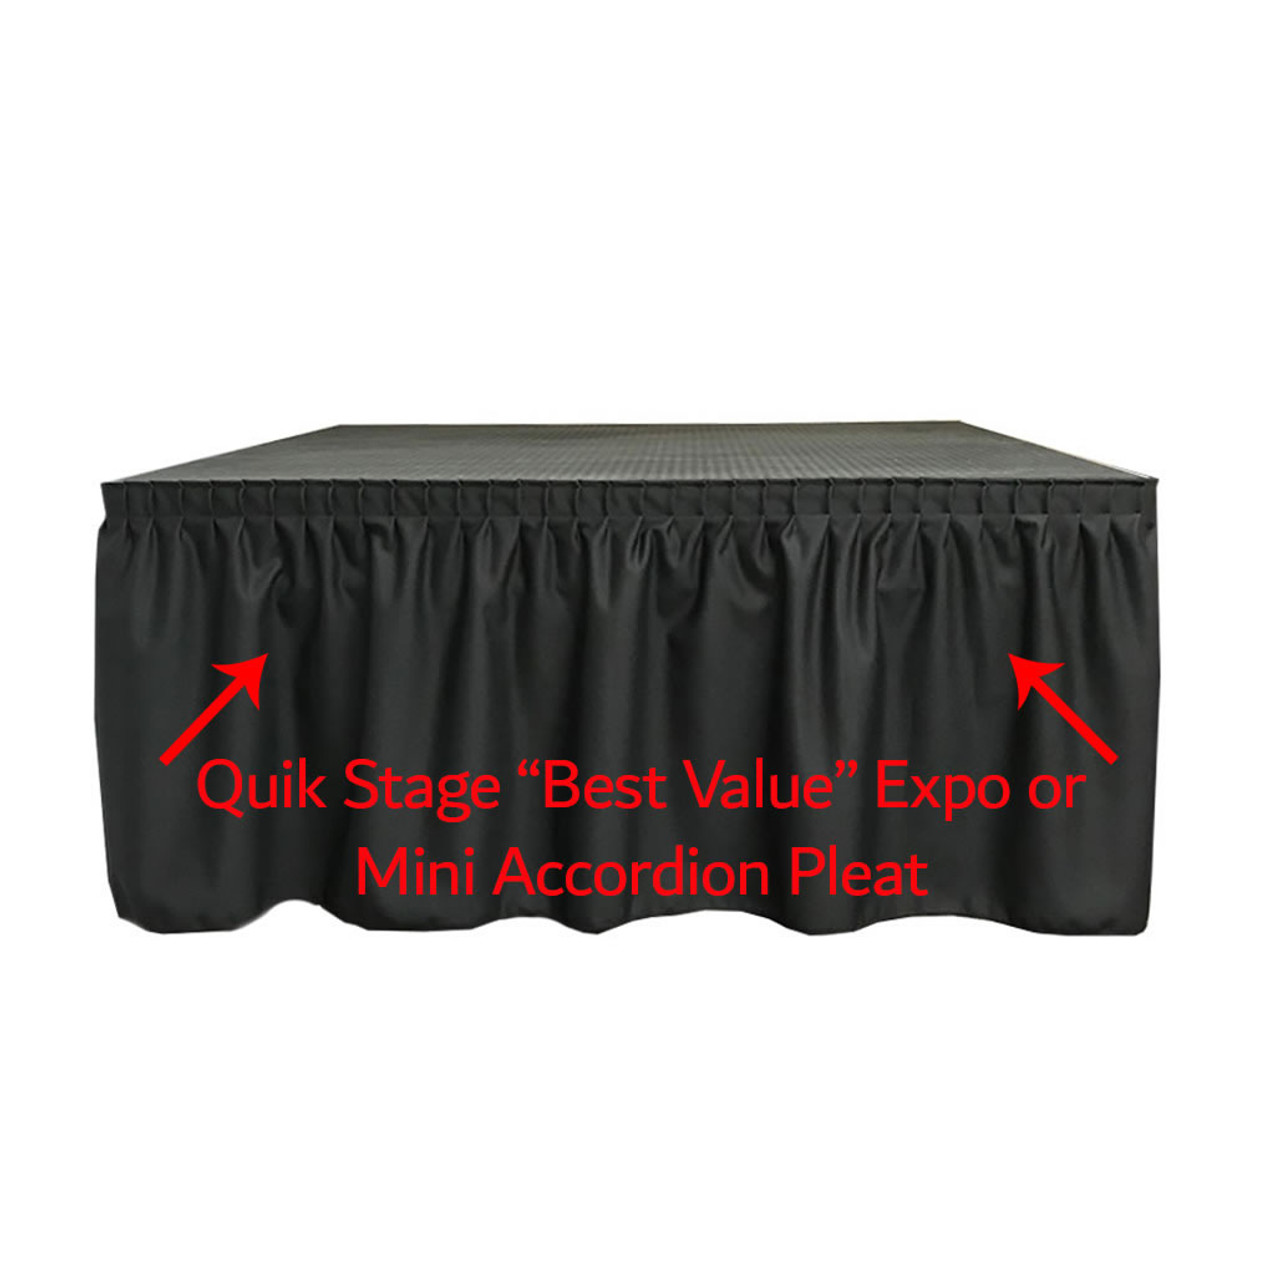 32 Inches High Best Value Black Expo Pleat Polyester Stage Skirting with Velcro. FR Rated. - Expo/Mini-Accordion Pleat skirting on stage.